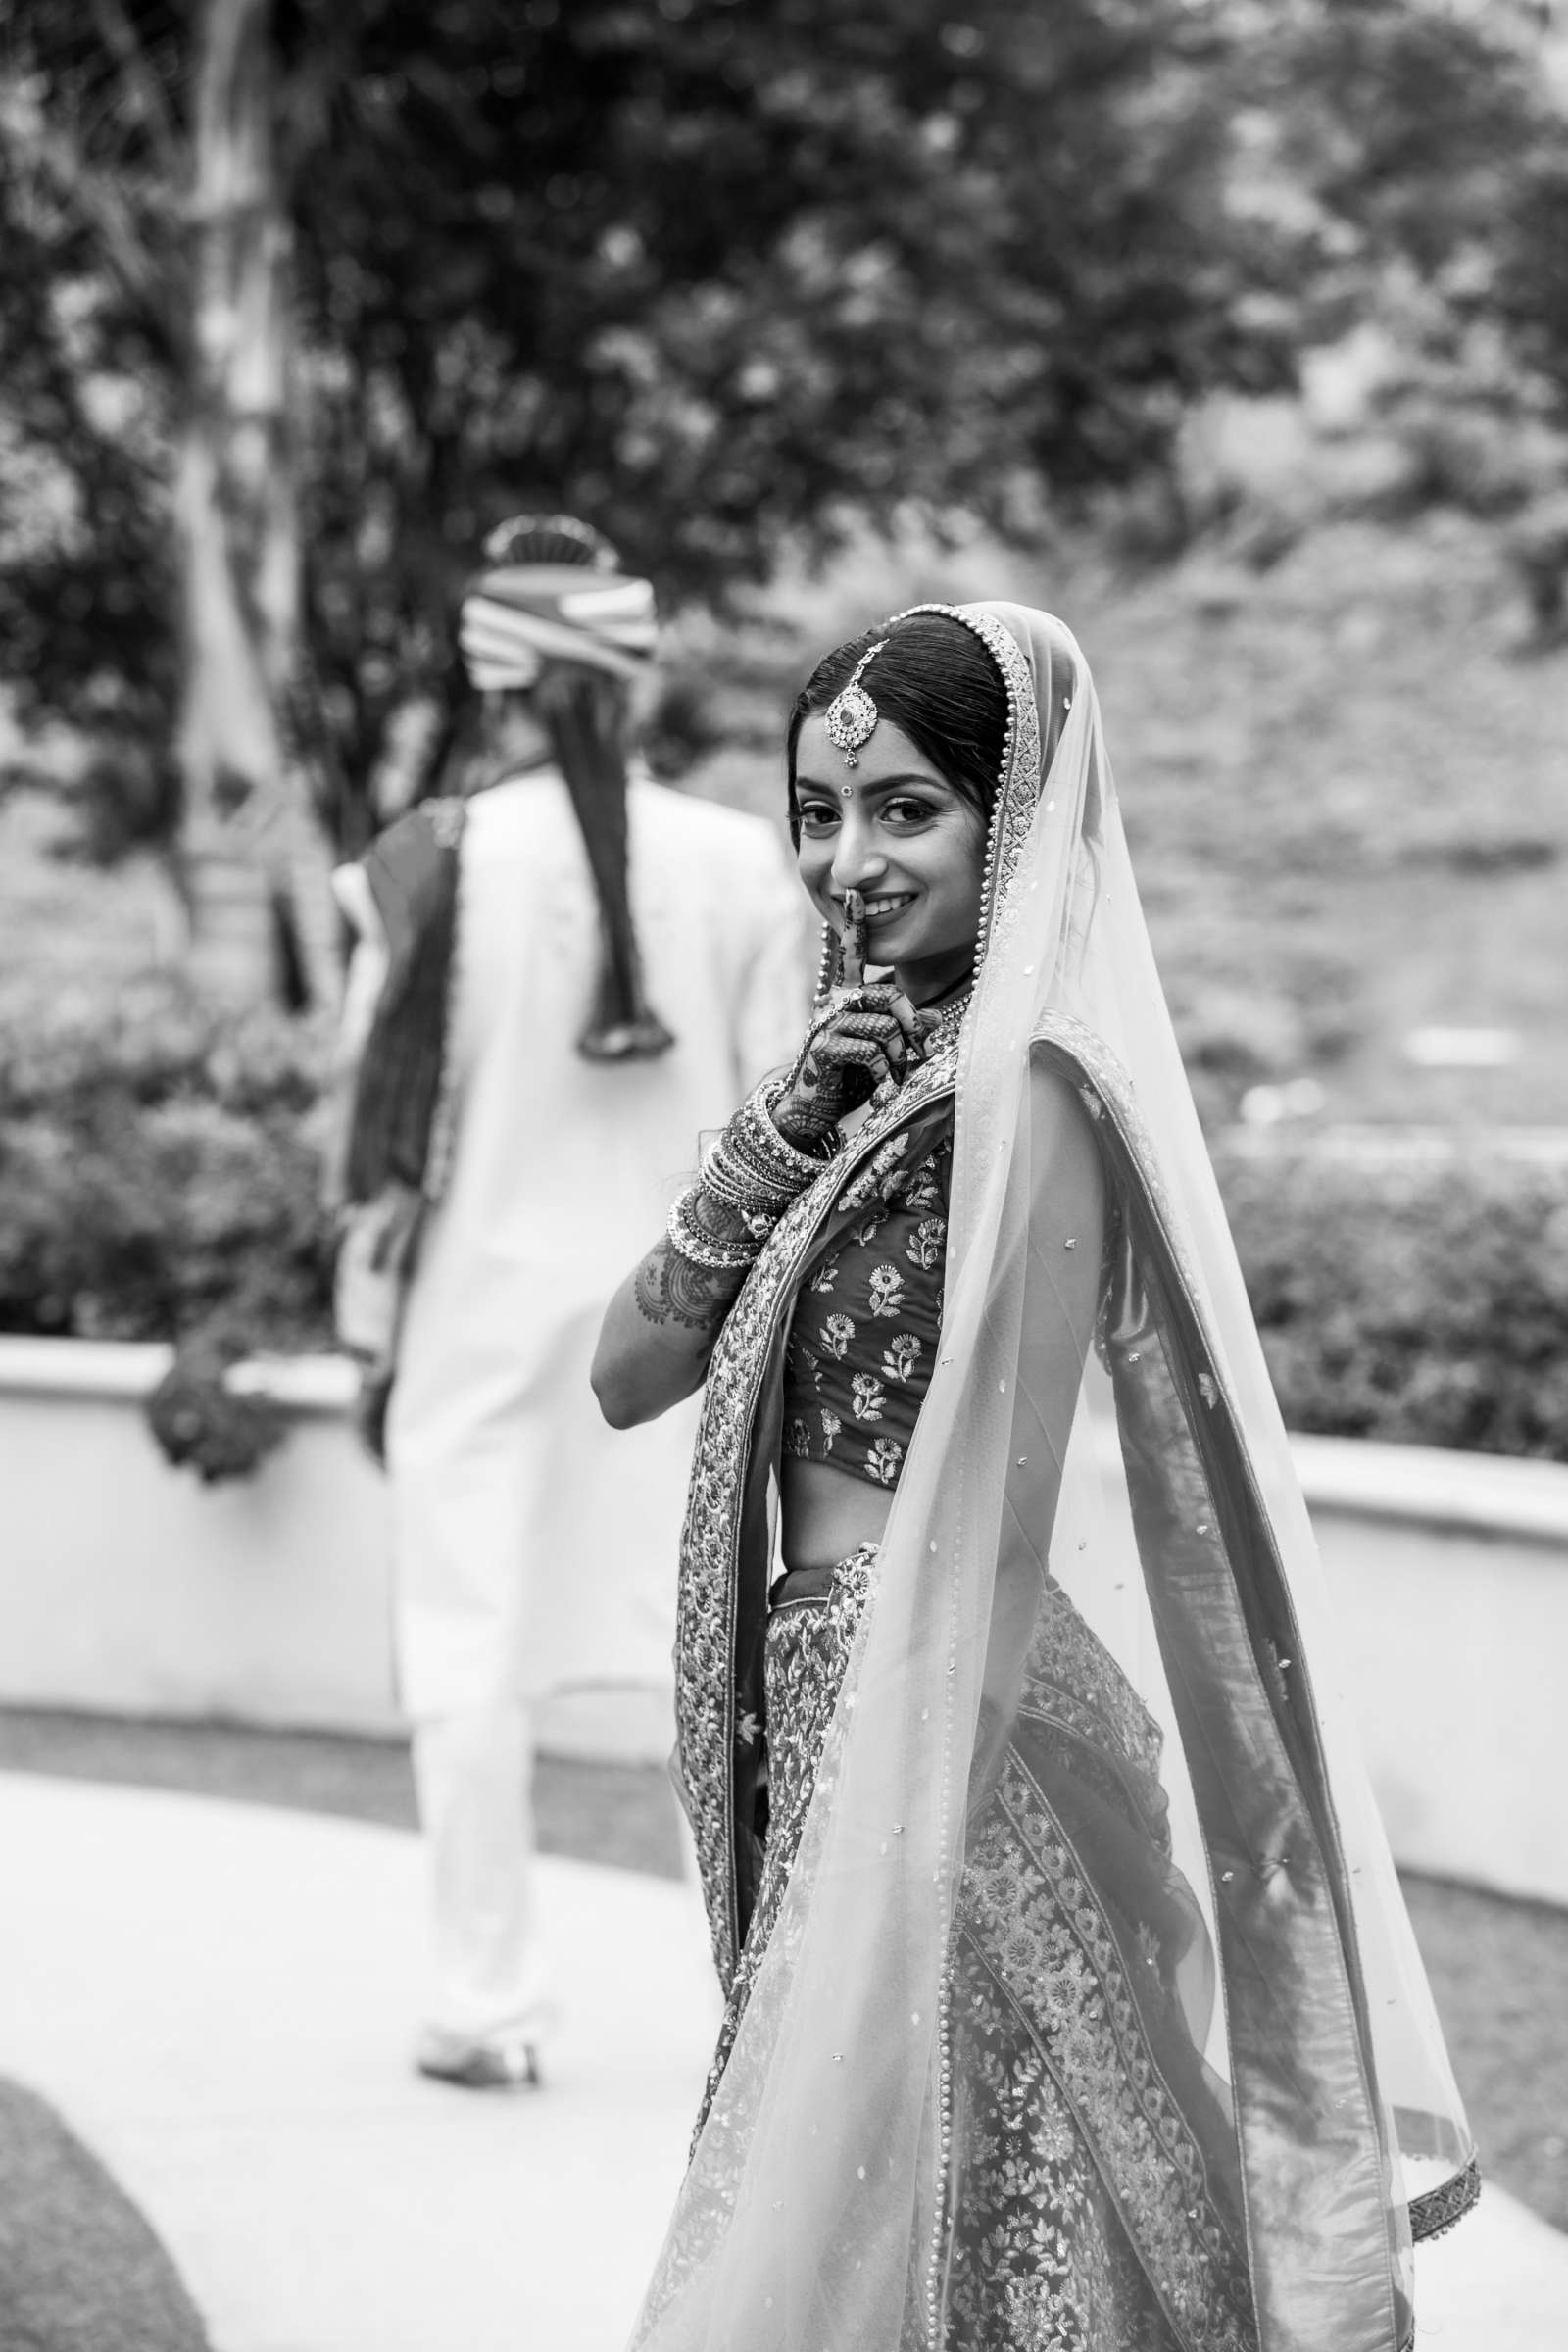 The Westin Carlsbad Resort and Spa Wedding coordinated by Shilpa Patel Events, Ami and Amit Wedding Photo #156 by True Photography